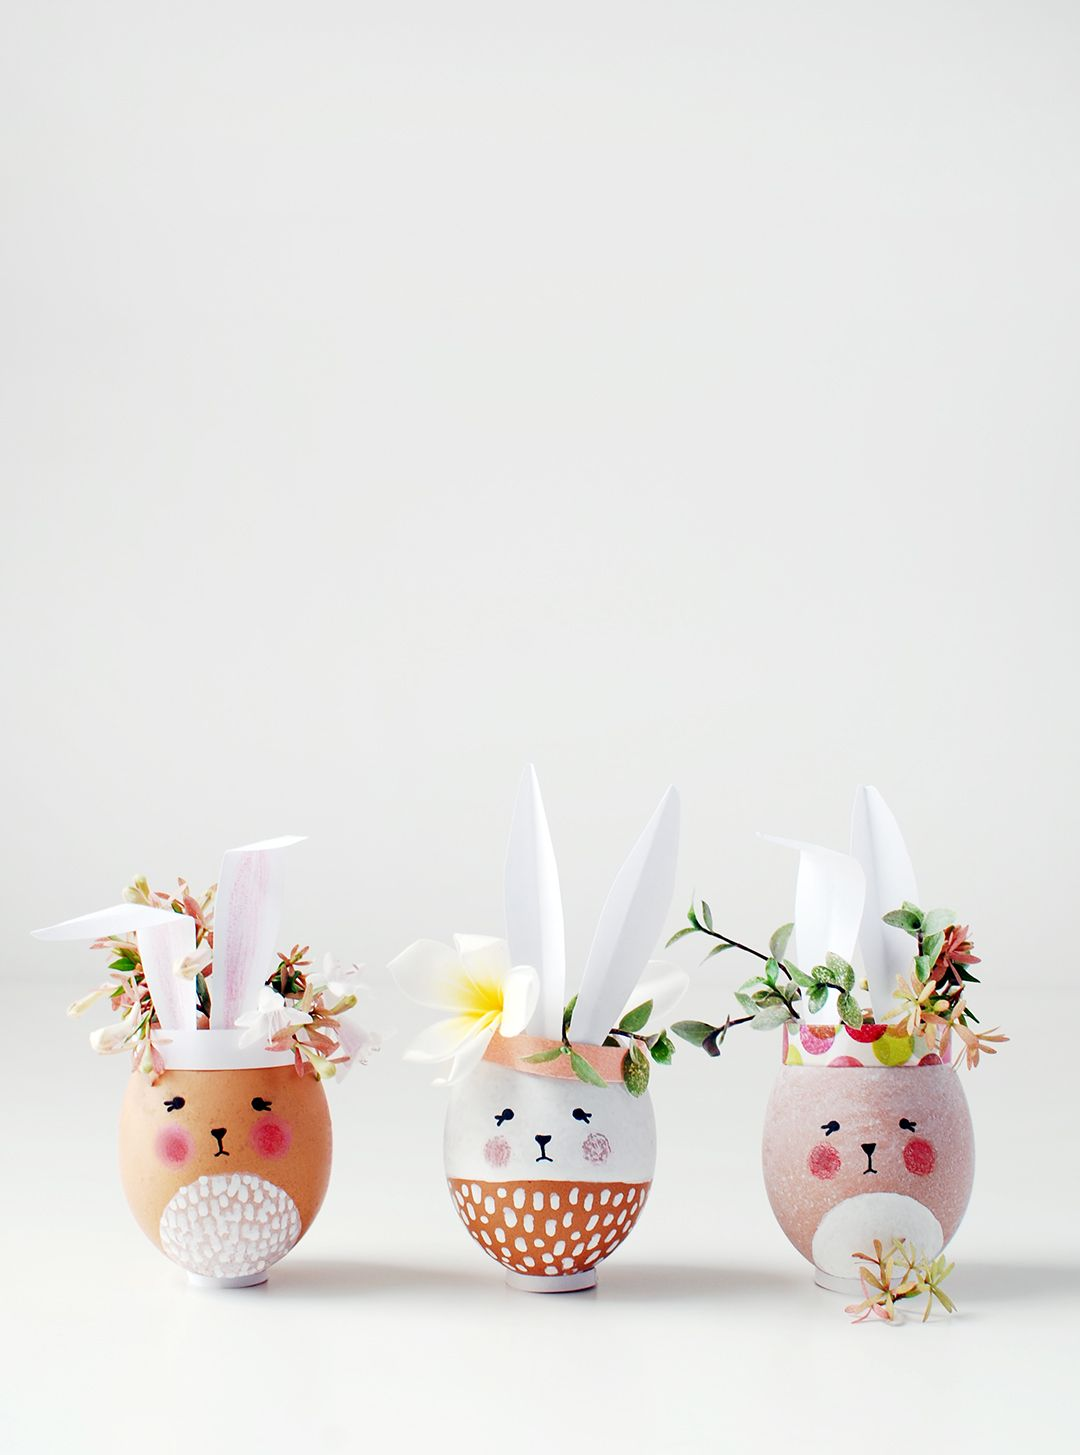 Easter craft ideas. Make mini Easter Bunny vases and planters from eggshells. So adorable and fun to make. Perfect Easter decorations or gifts.